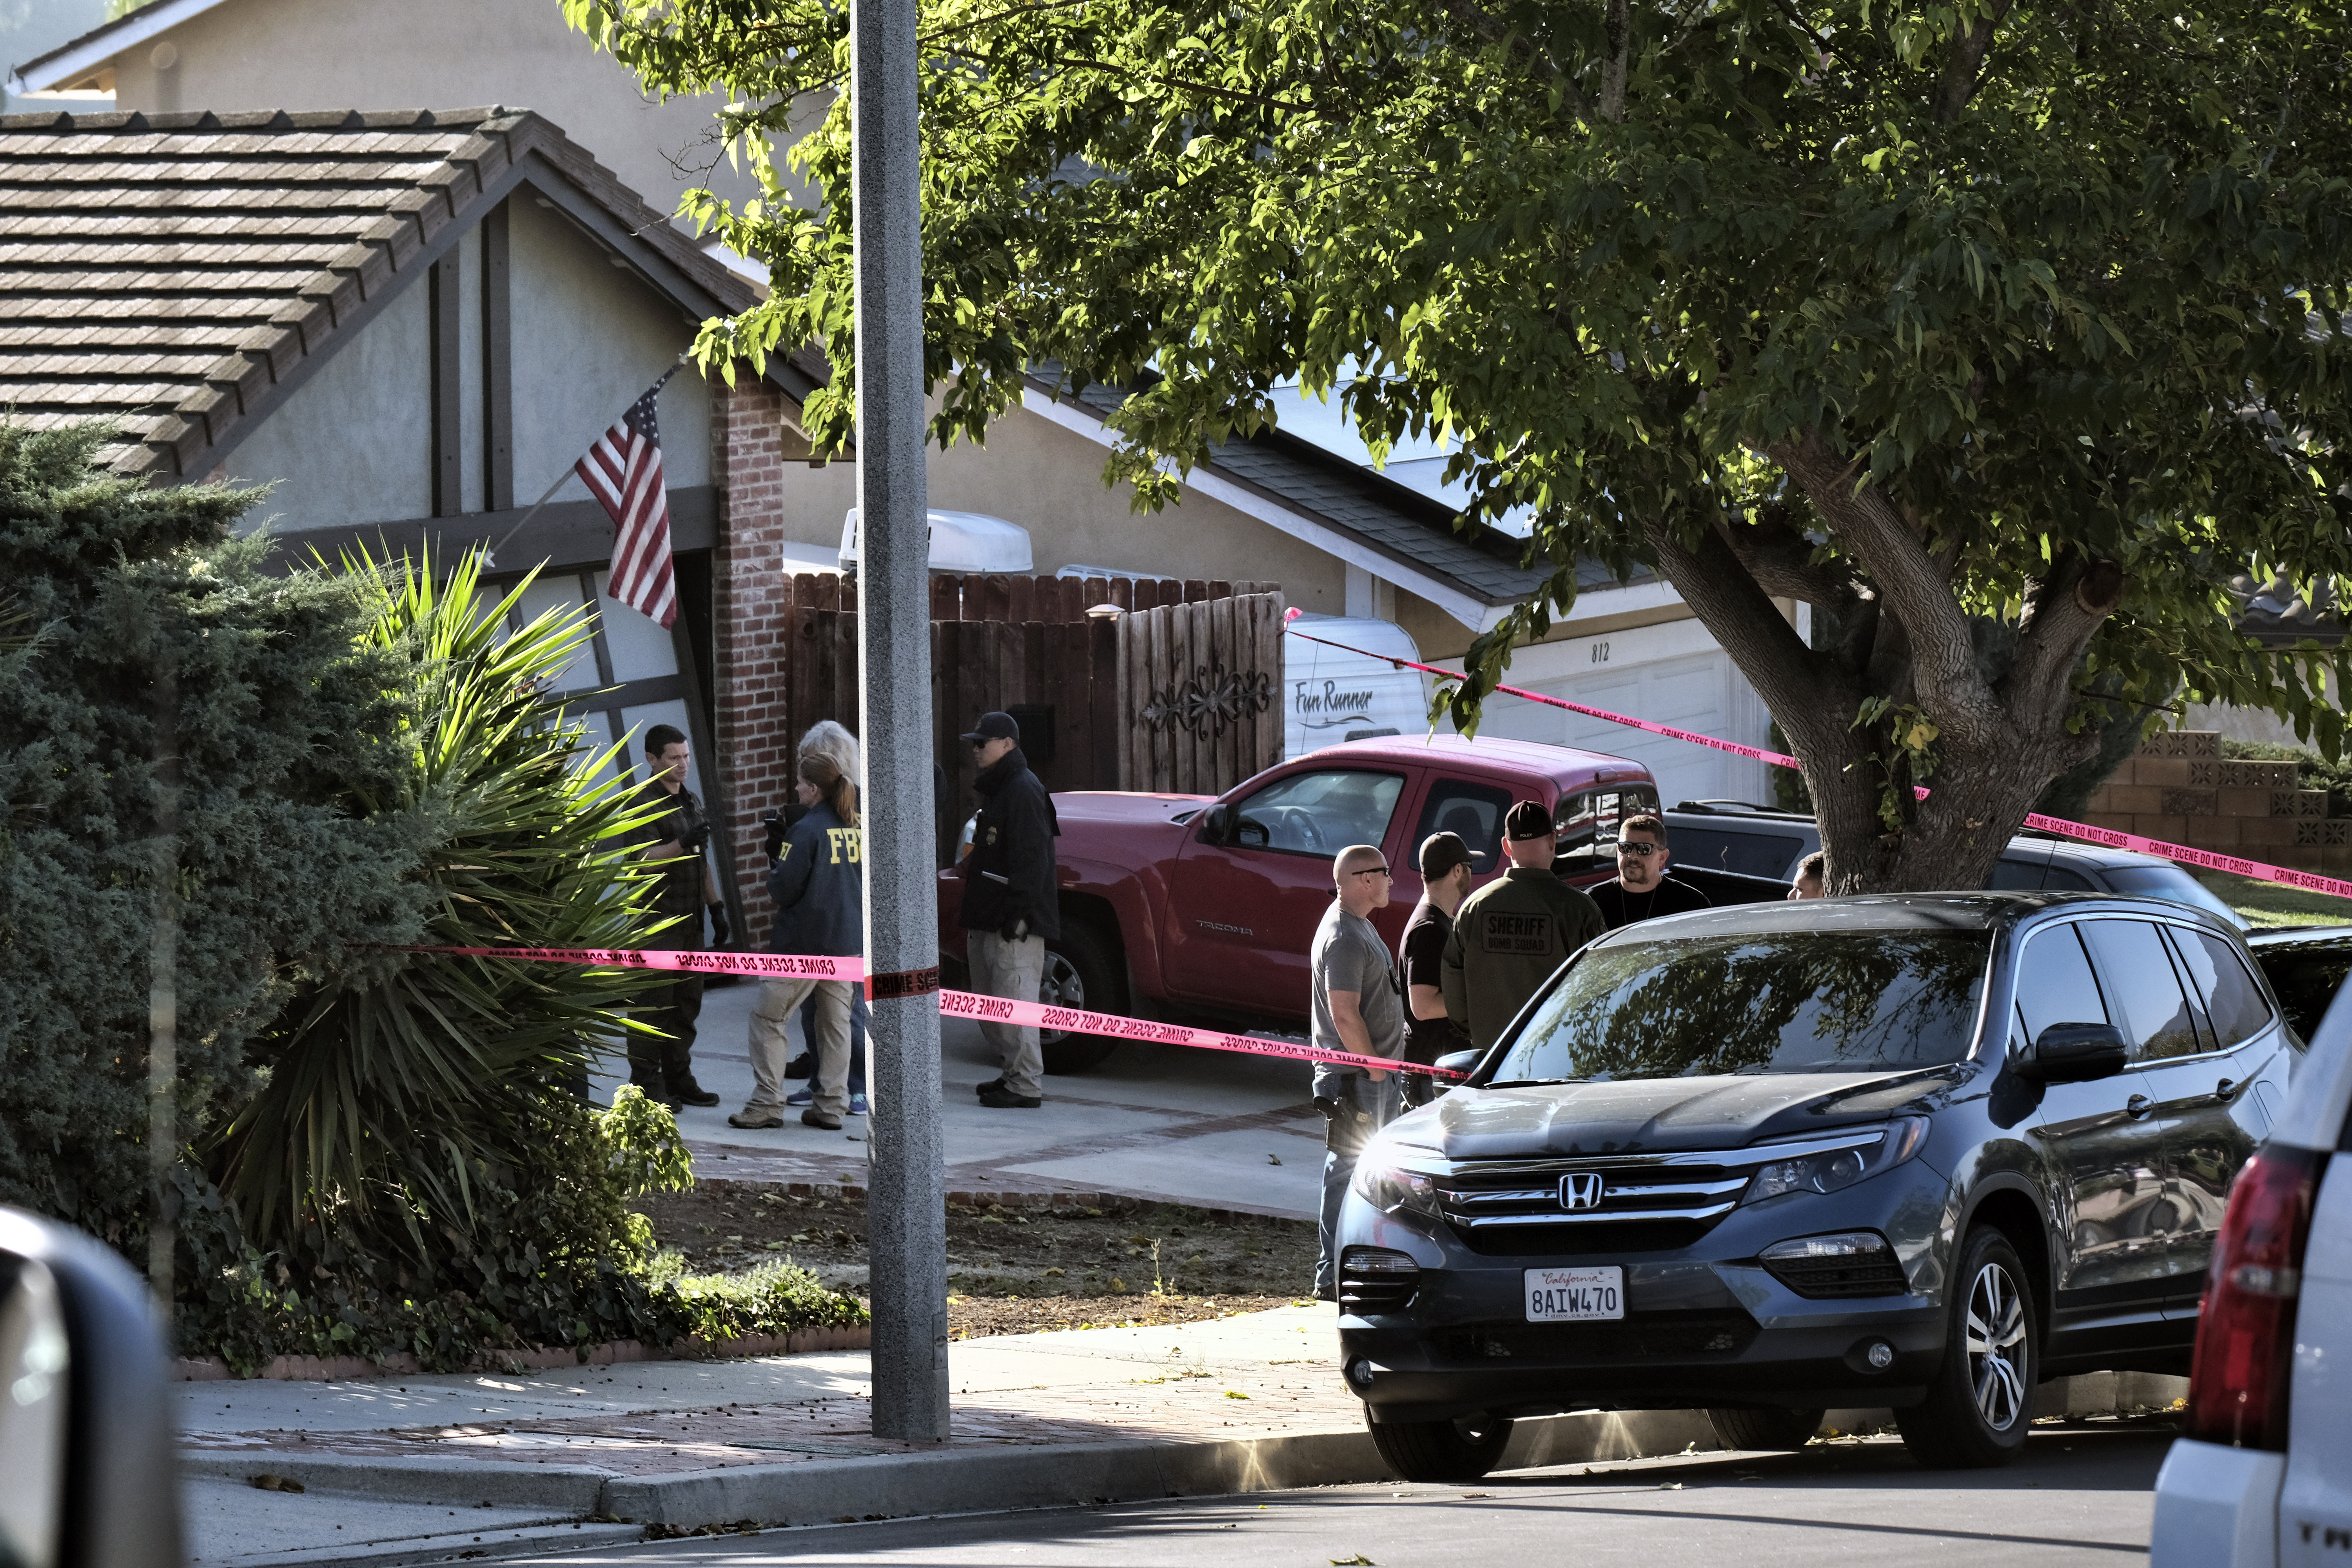 Ventura County Sheriff's deputies and FBI investigators stand outside the house of shooting suspect David Ian Long in Newbury Park, Calif., on Thursday, Nov. 8, 2018. Authorities said the former Marine opened fire at a country music bar in Southern California on Wednesday evening. (AP Photo/Richard Vogel)